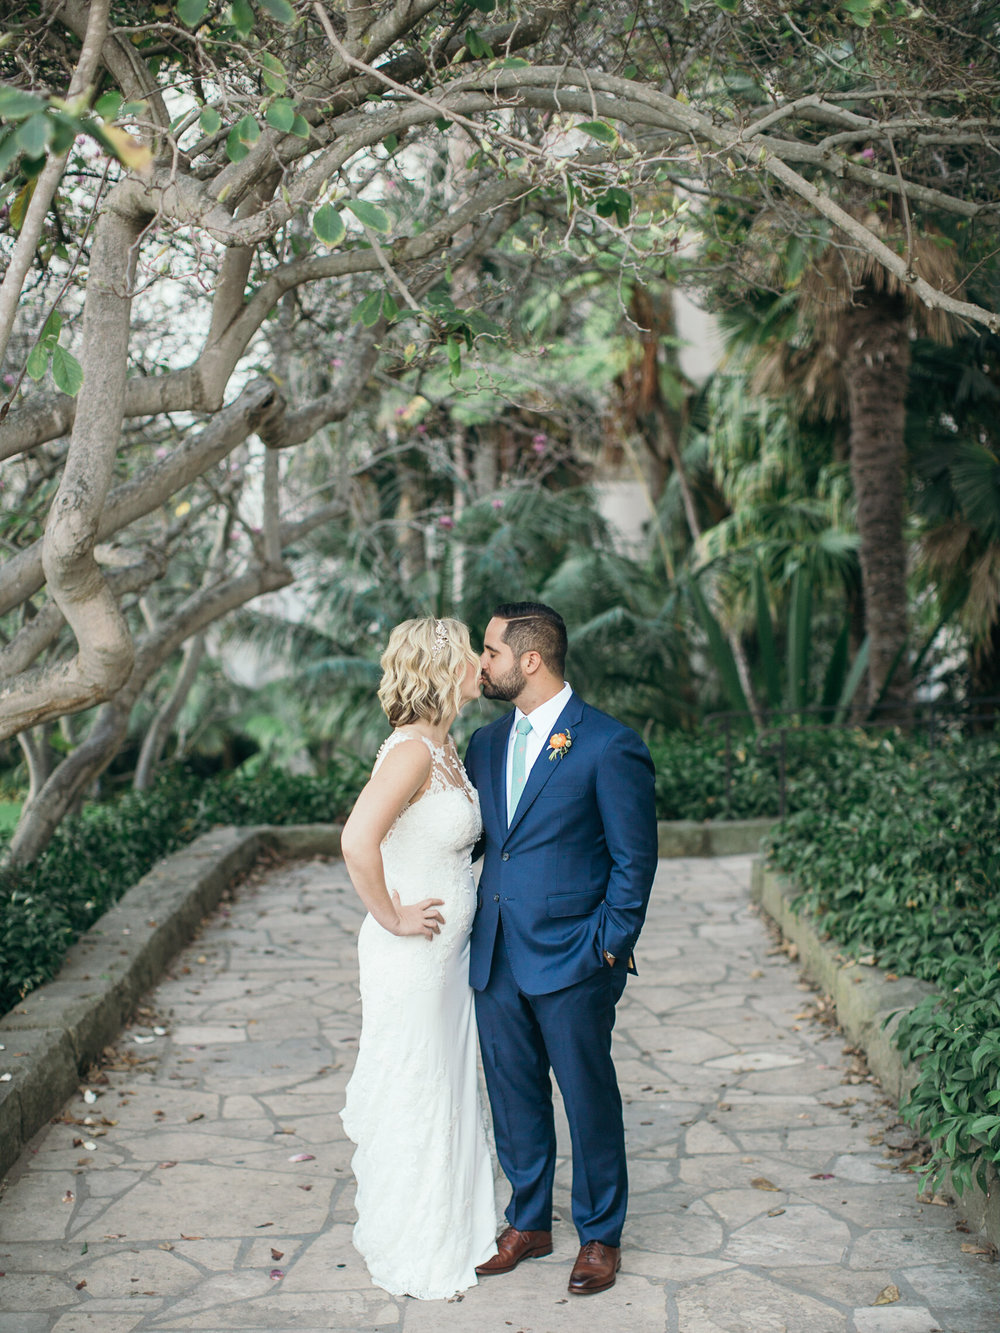 www.santabarbarawedding.com | Kiel Rucker | Riviera Mansion | Bride and Groom